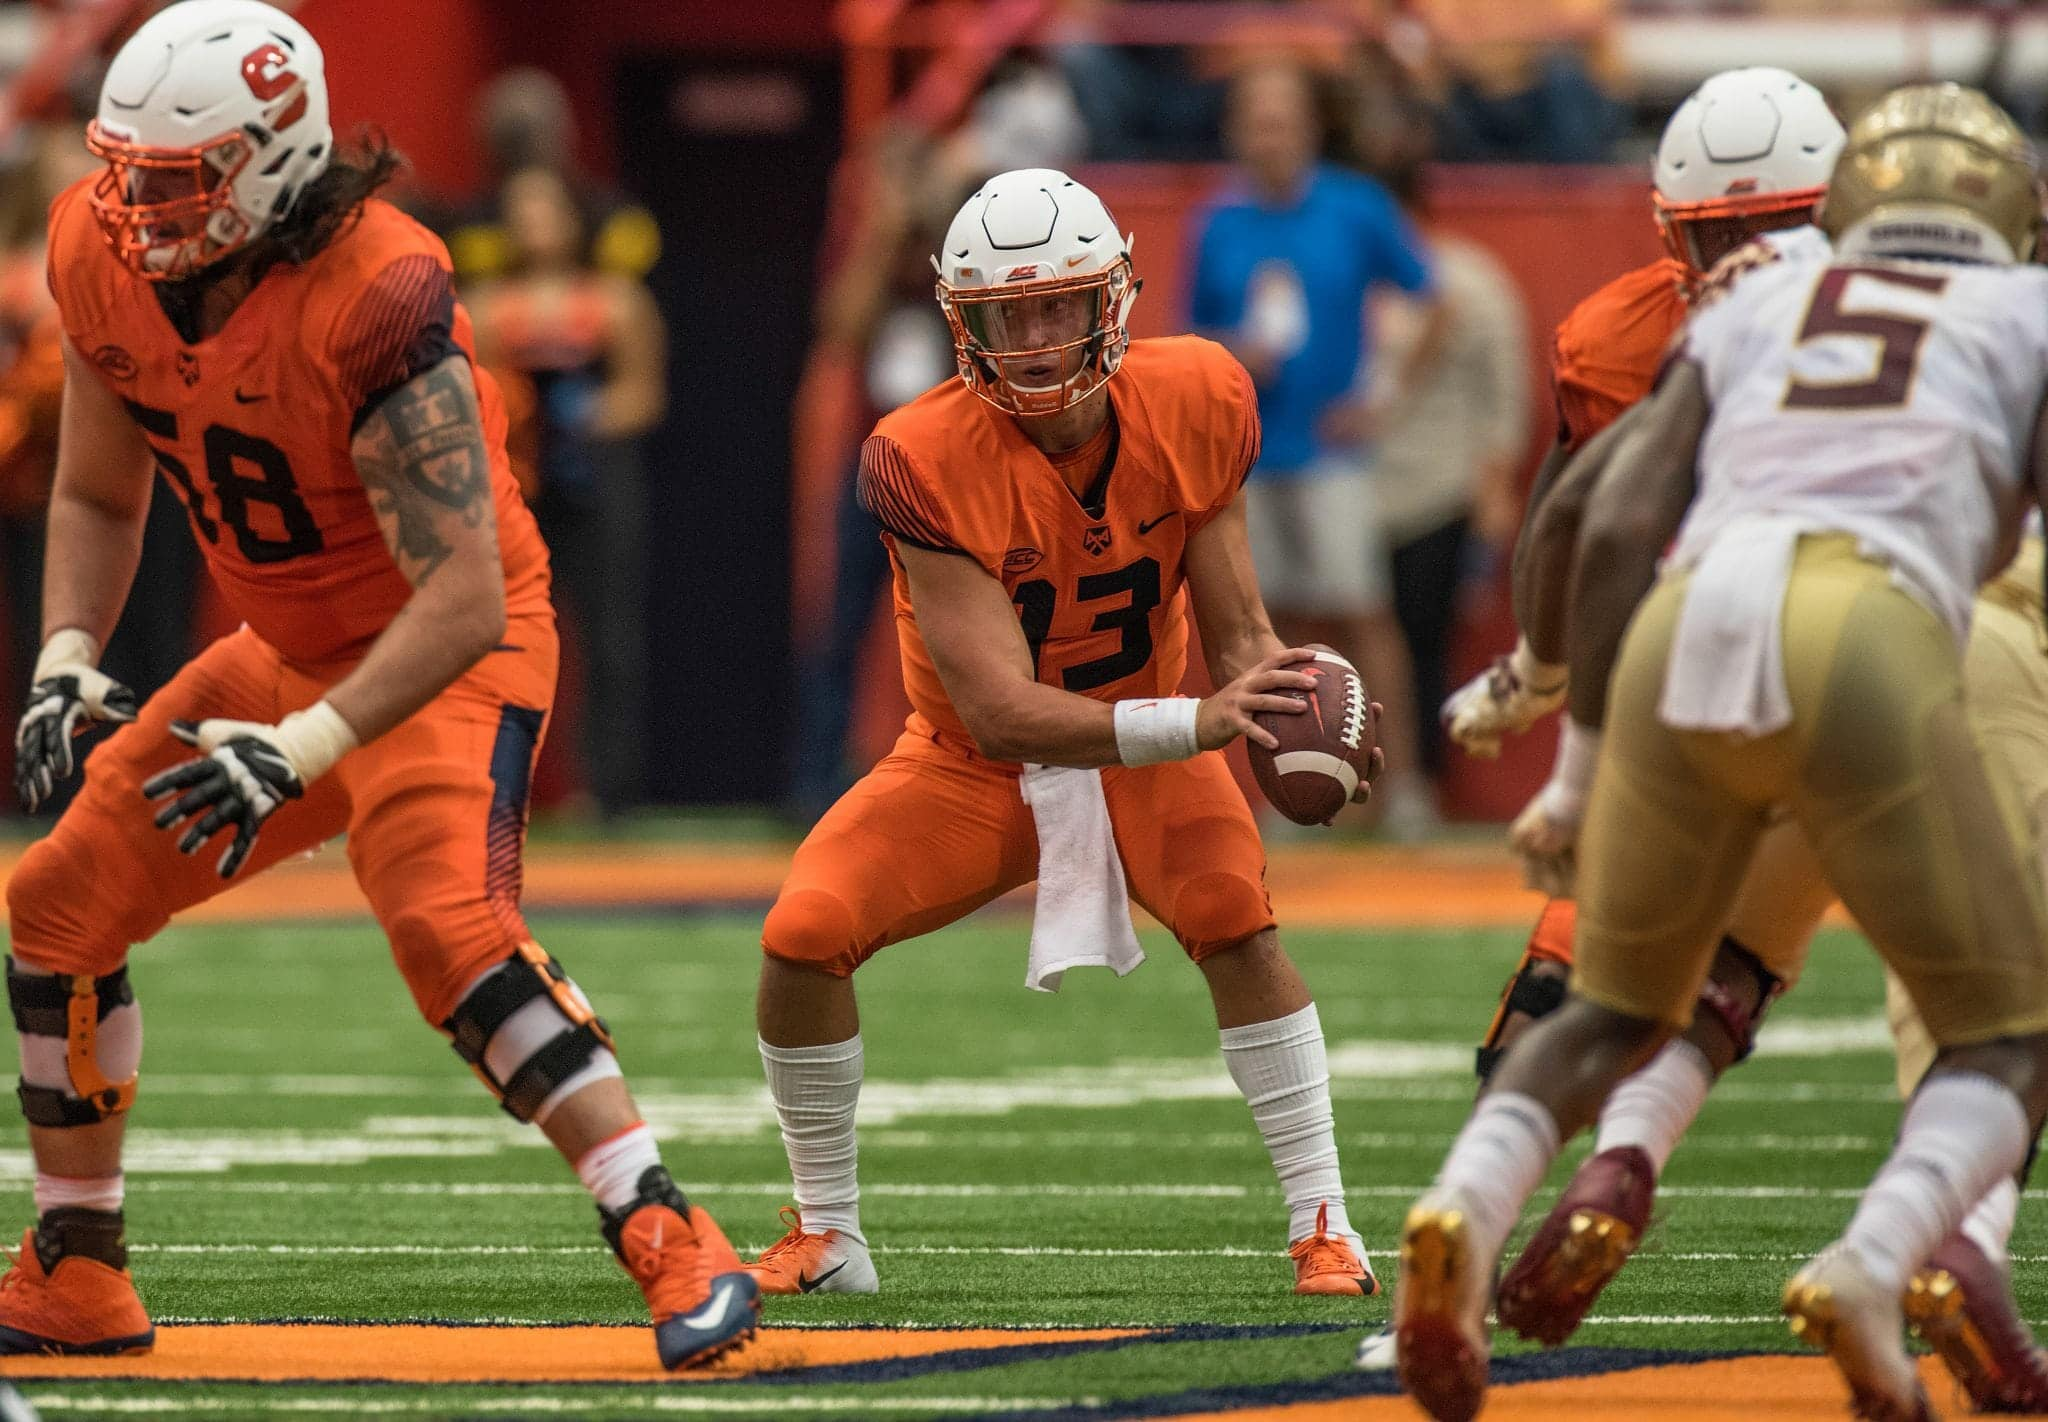 Redshirt freshman quarterback Tommy DeVito replaced starting quarterback Eric Dungey who left the game near the end of the first half.